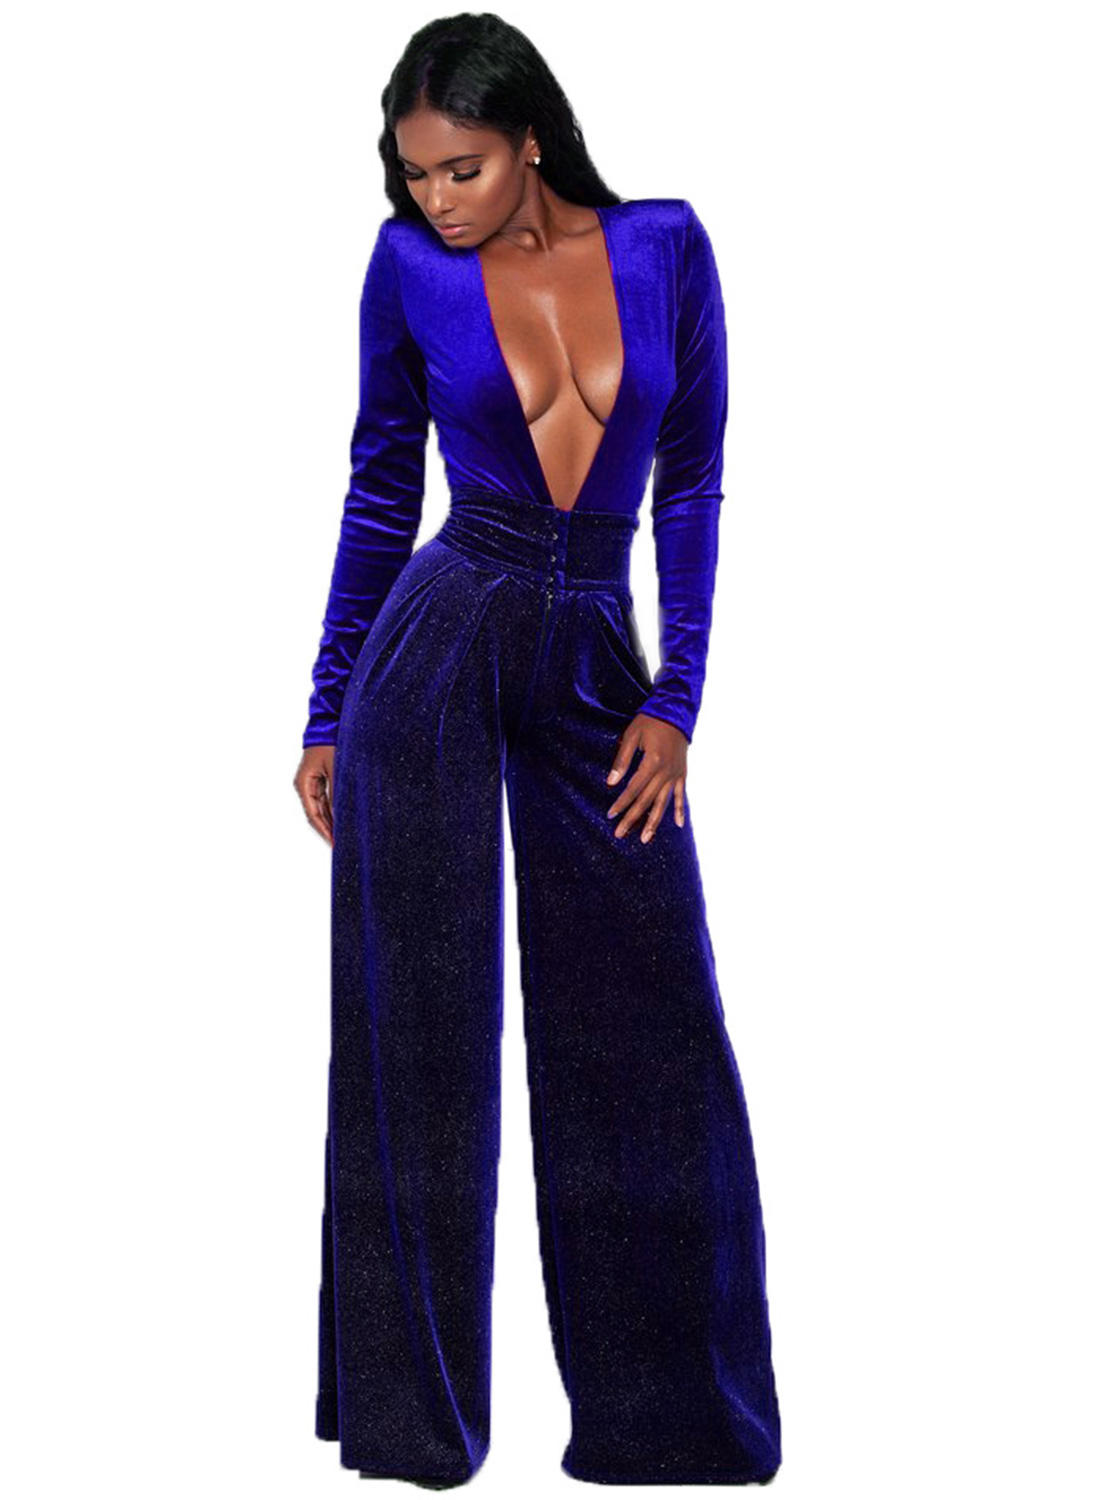 a43ec57b0c18 Fashion Deep V Neck Long Sleeve Solid Color Jumpsuit STYLESIMO.com. Loading  zoom